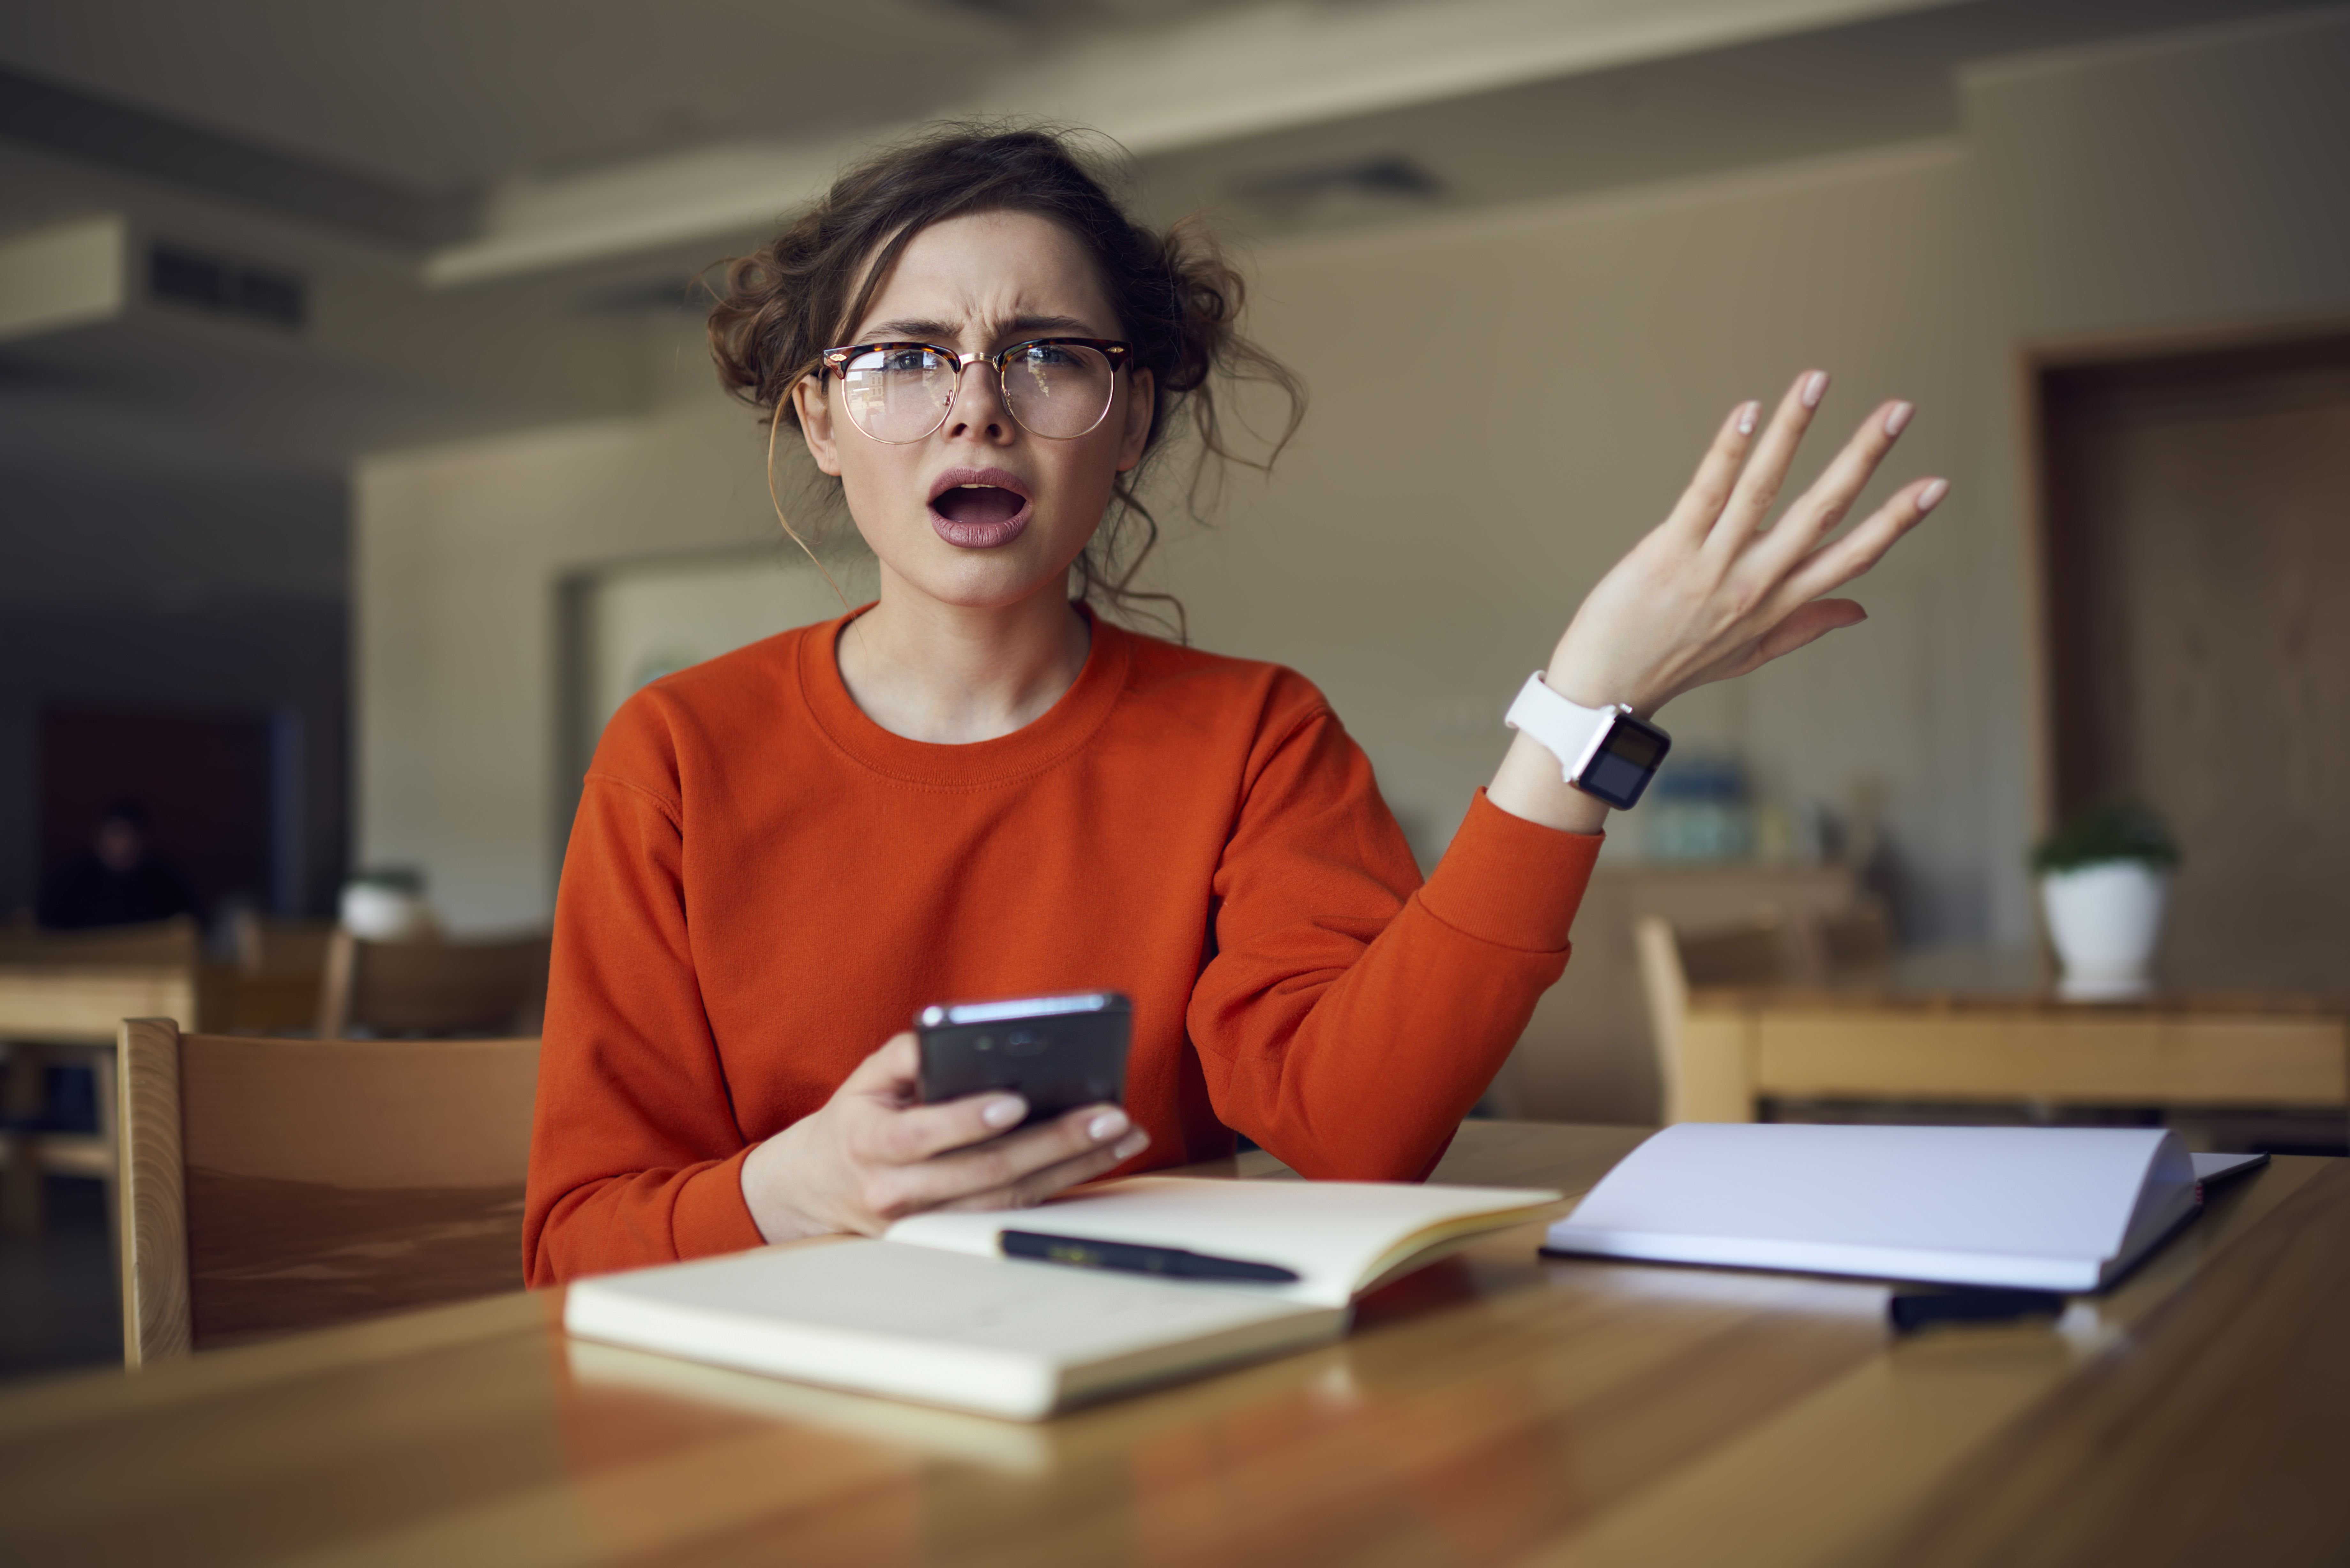 A woman looking annoyed while holding a phone.   Source: Shutterstock